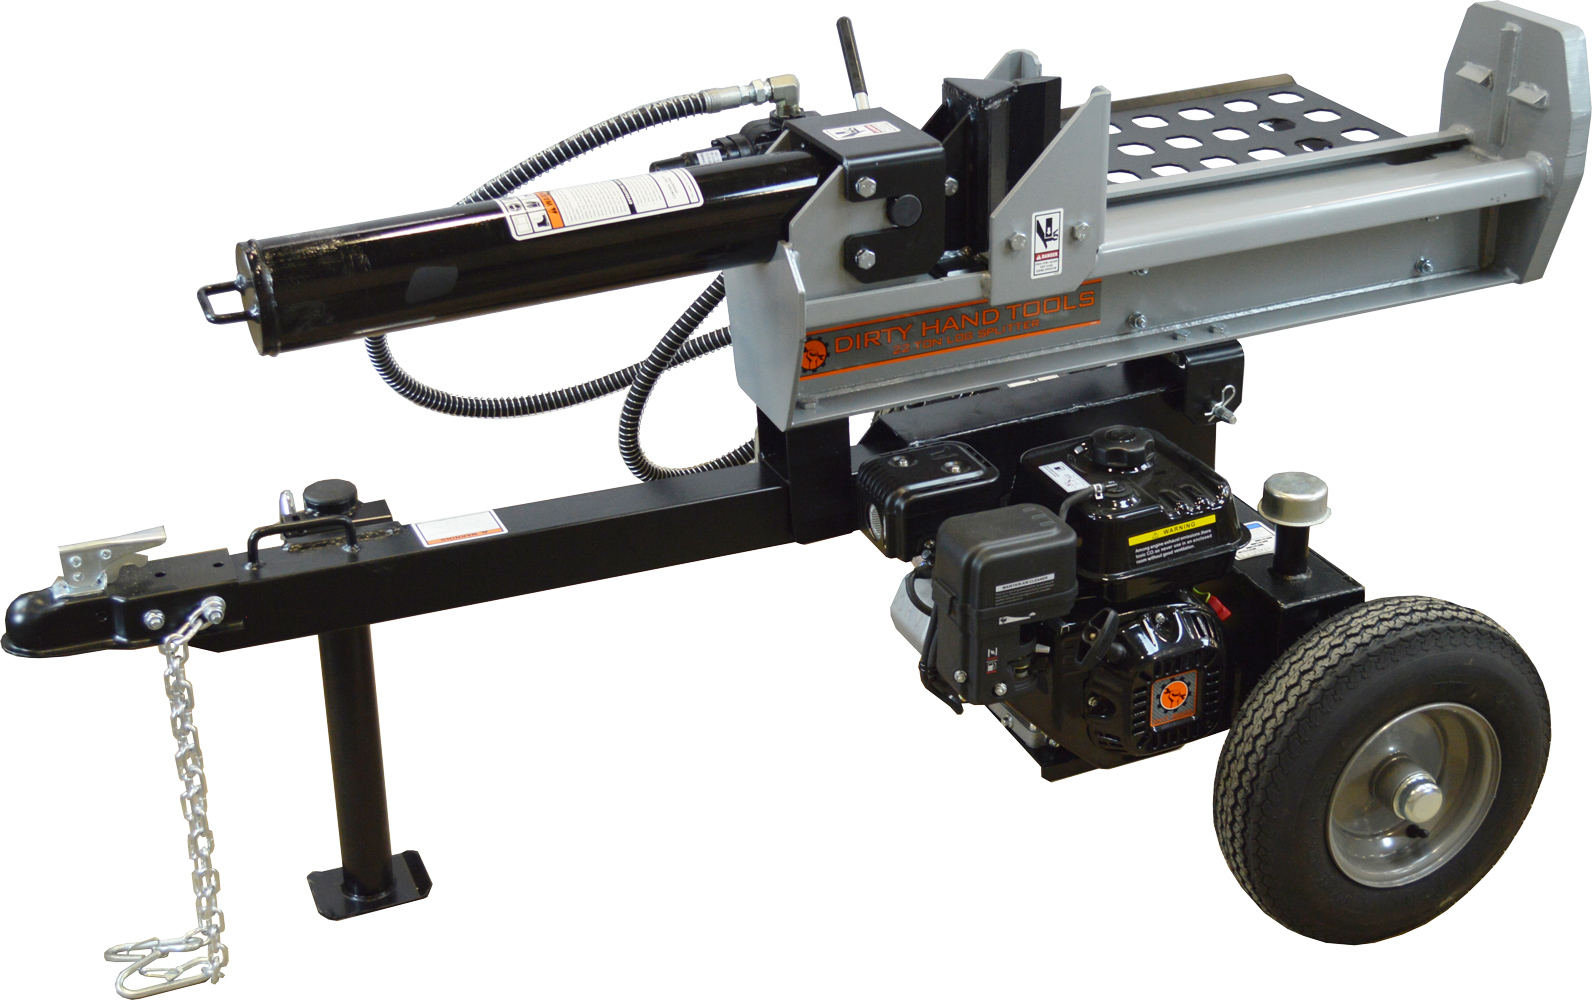 Dirty Hand Tools 22 Ton Half-Beam Horizontal Vertical Log Splitter, Loncin Engine by Frictionless World, LLC